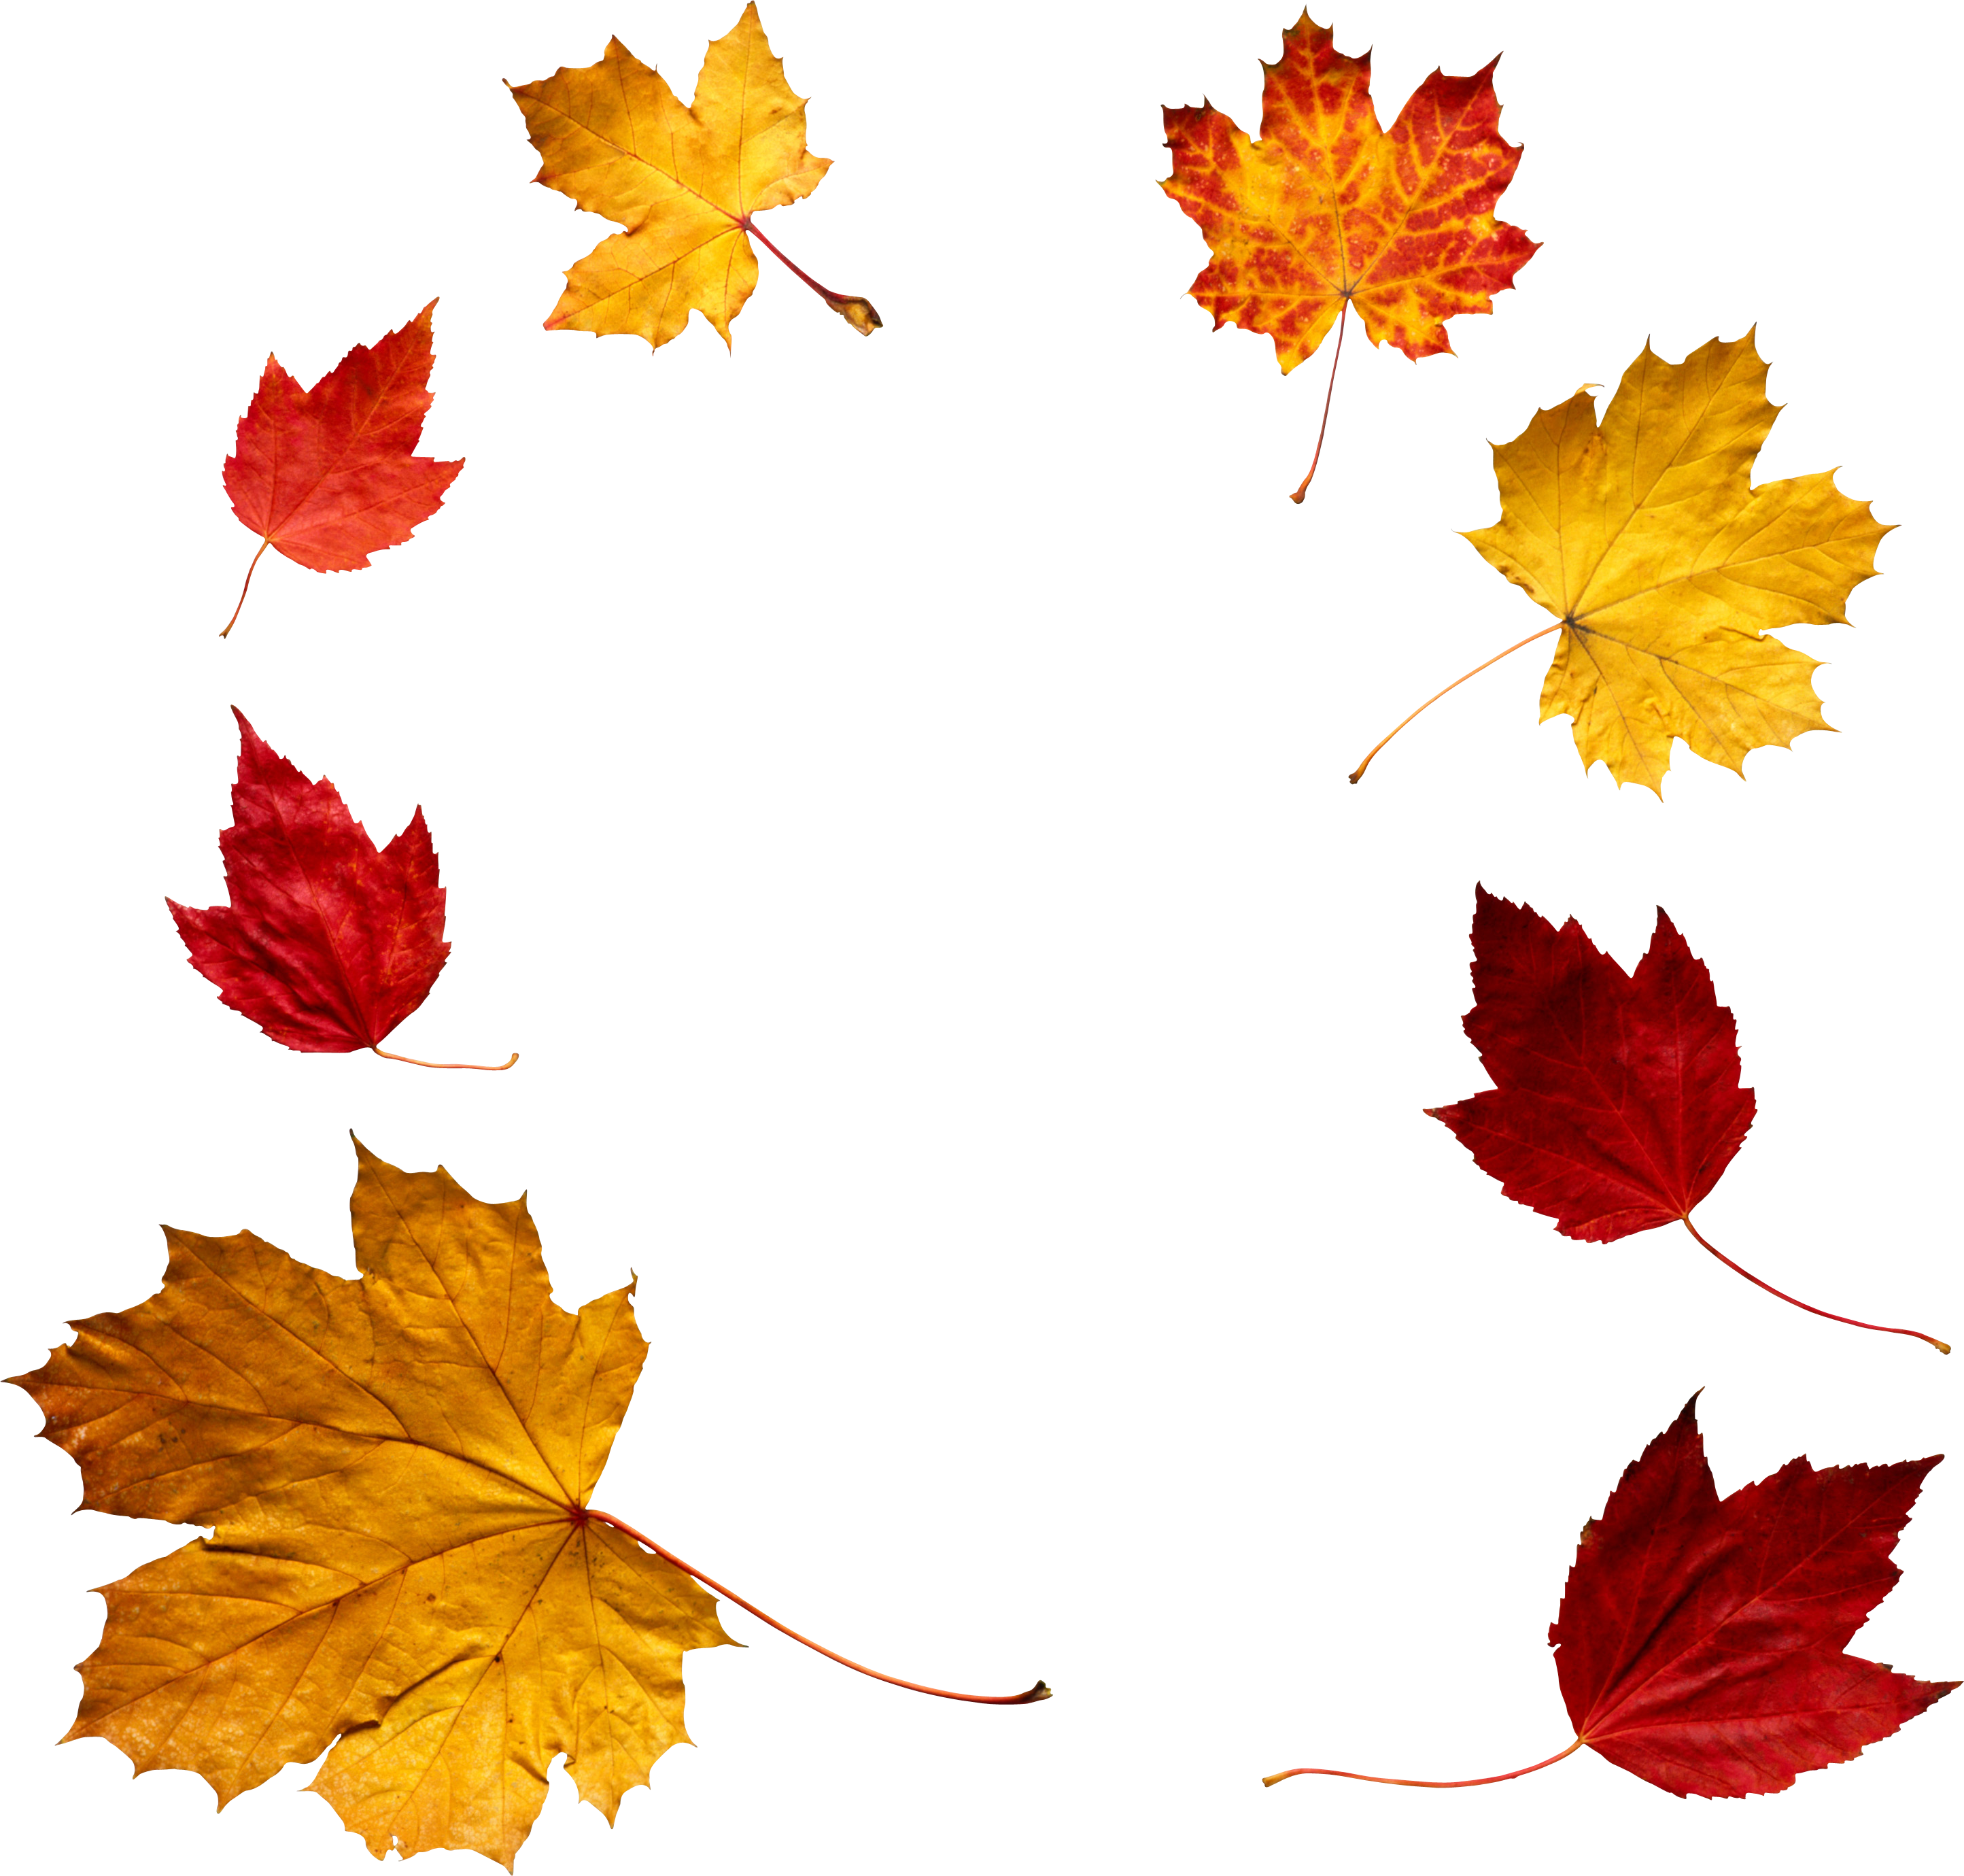 autumn leaf png image purepng free transparent cc0 png image library